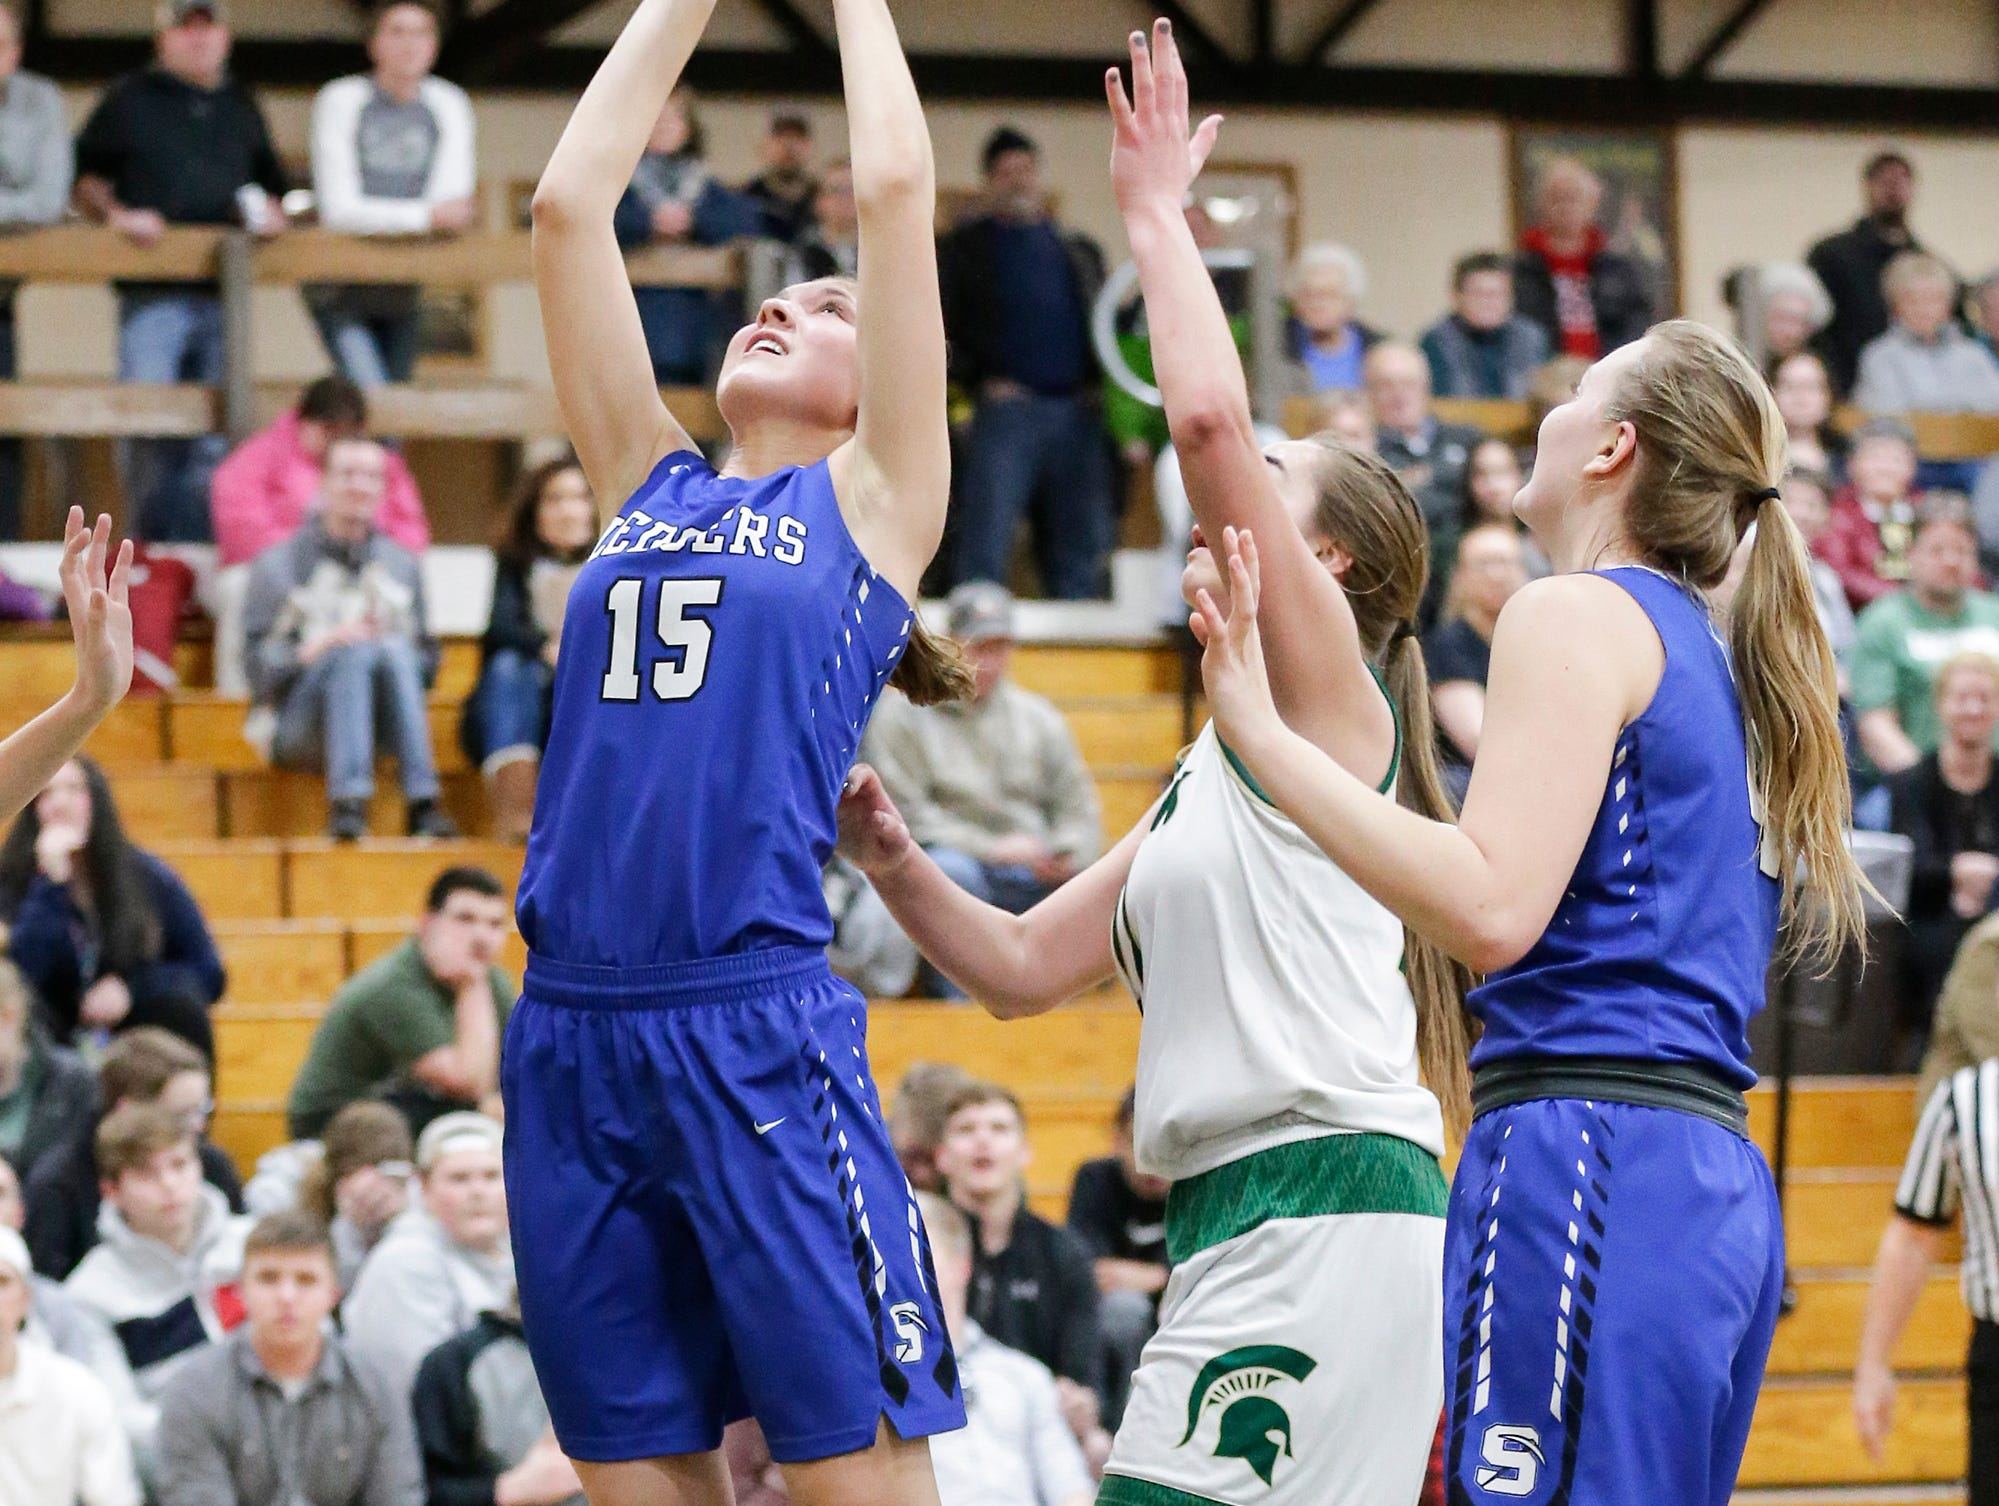 St. Mary's Springs Academy girls basketball's Maddie Gehring makes this basket against Laconia High School Tuesday, January 15, 2019 during their game in Rosendale. Laconia won the game 57-45. Doug Raflik/USA TODAY NETWORK-Wisconsin